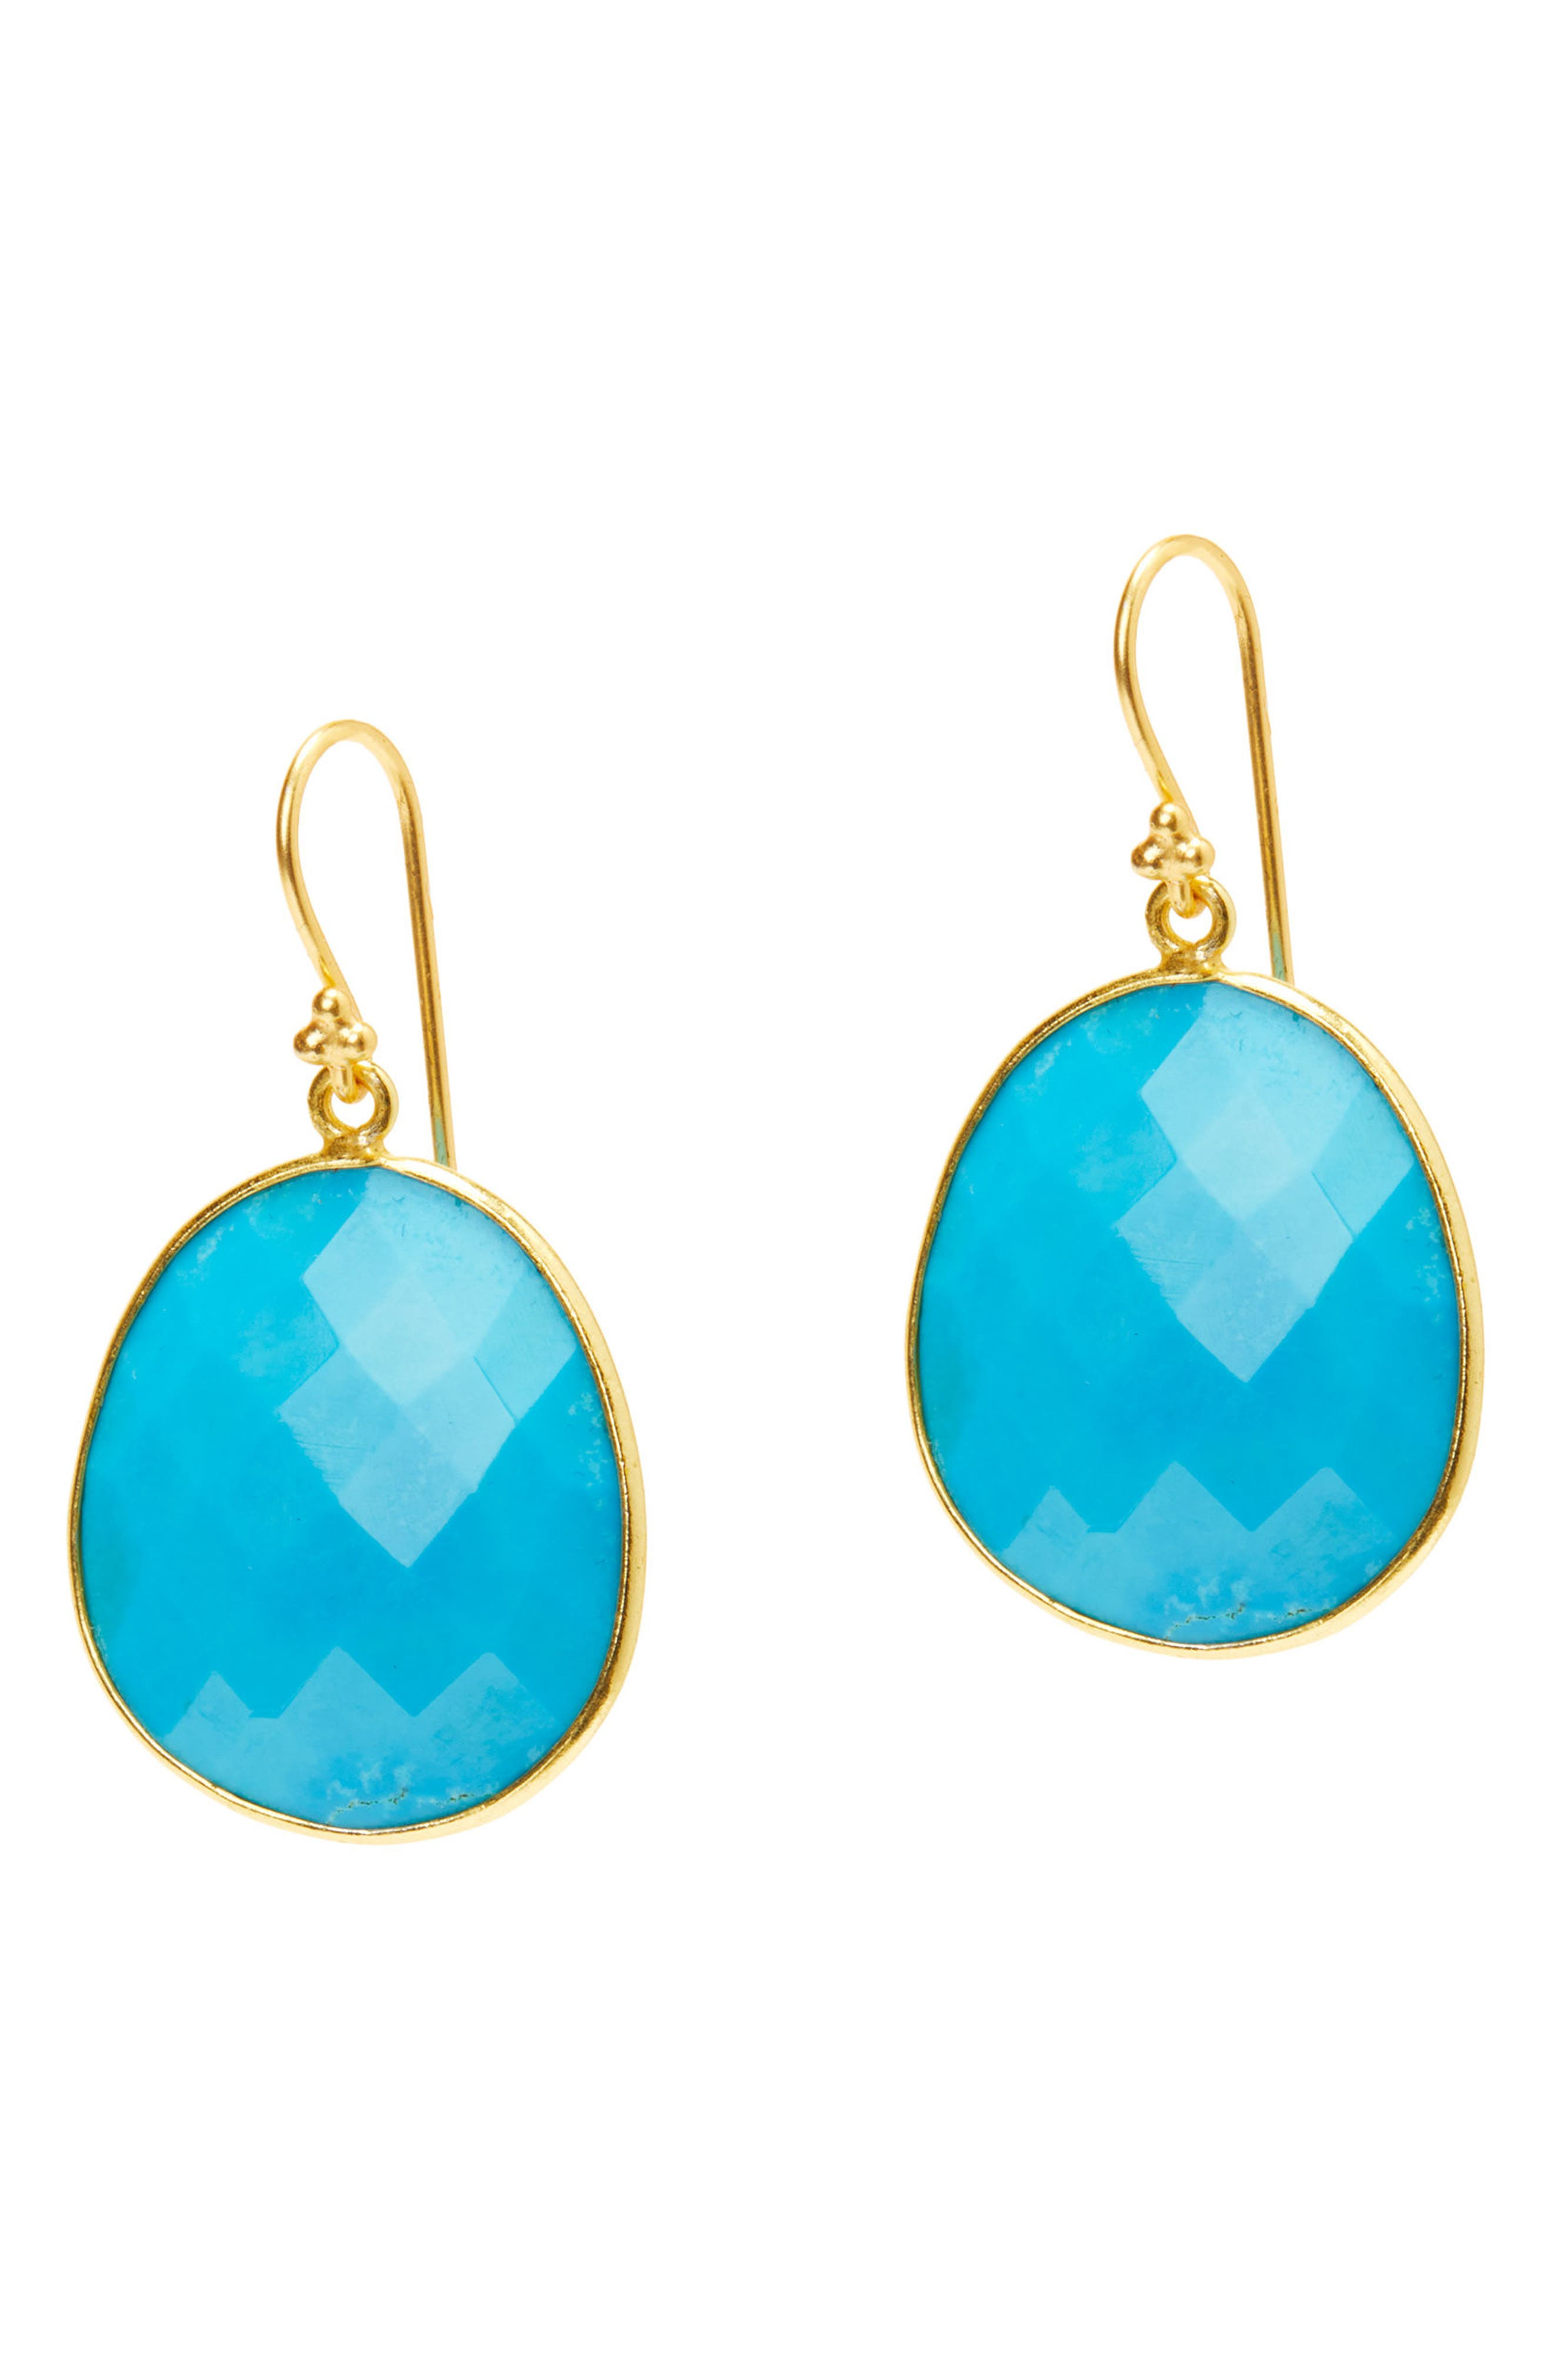 Mustique Semiprecious Stone Drop Earrings,                             Main thumbnail 1, color,                             Turquoise